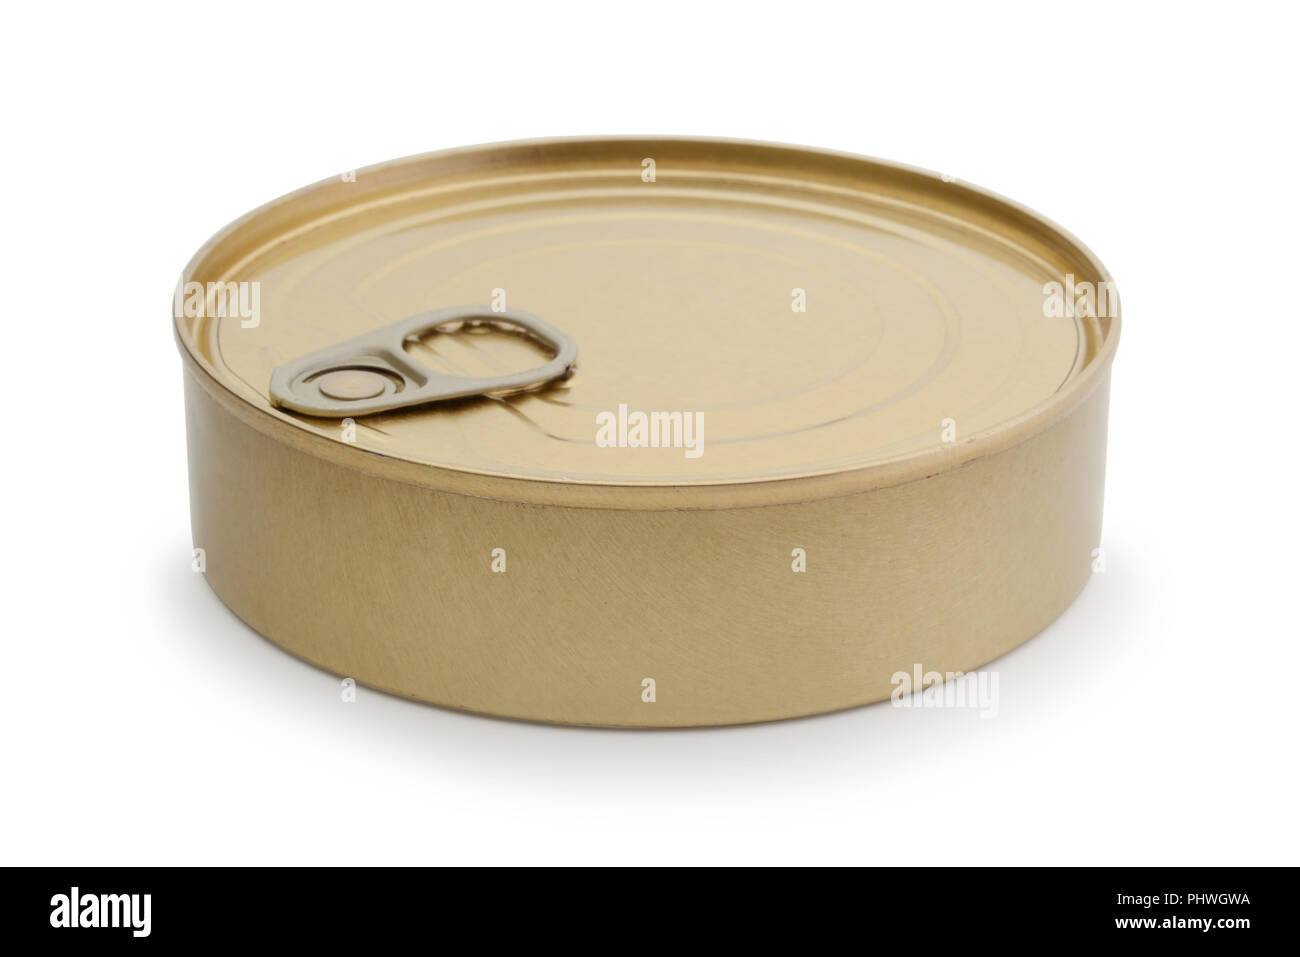 Tin can for conserve product isolated on white background - Stock Image